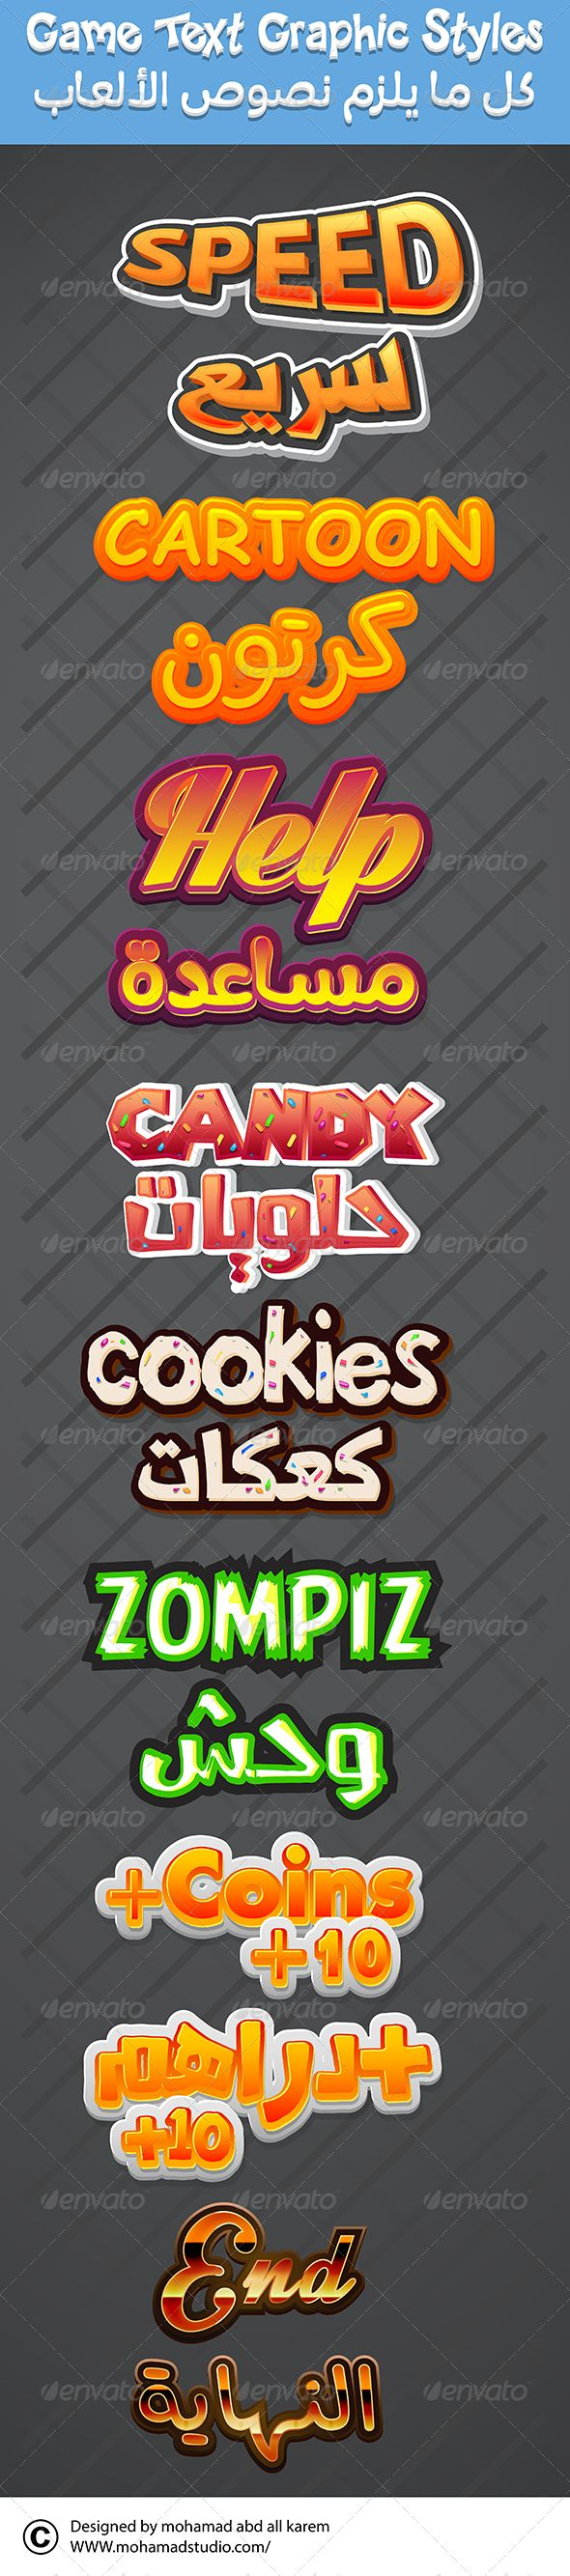 Game text graphic style for Adobe illustrator #design #ai Download: http://graphicriver.net/item/game-text-graphic-style/7721715?ref=ksioks